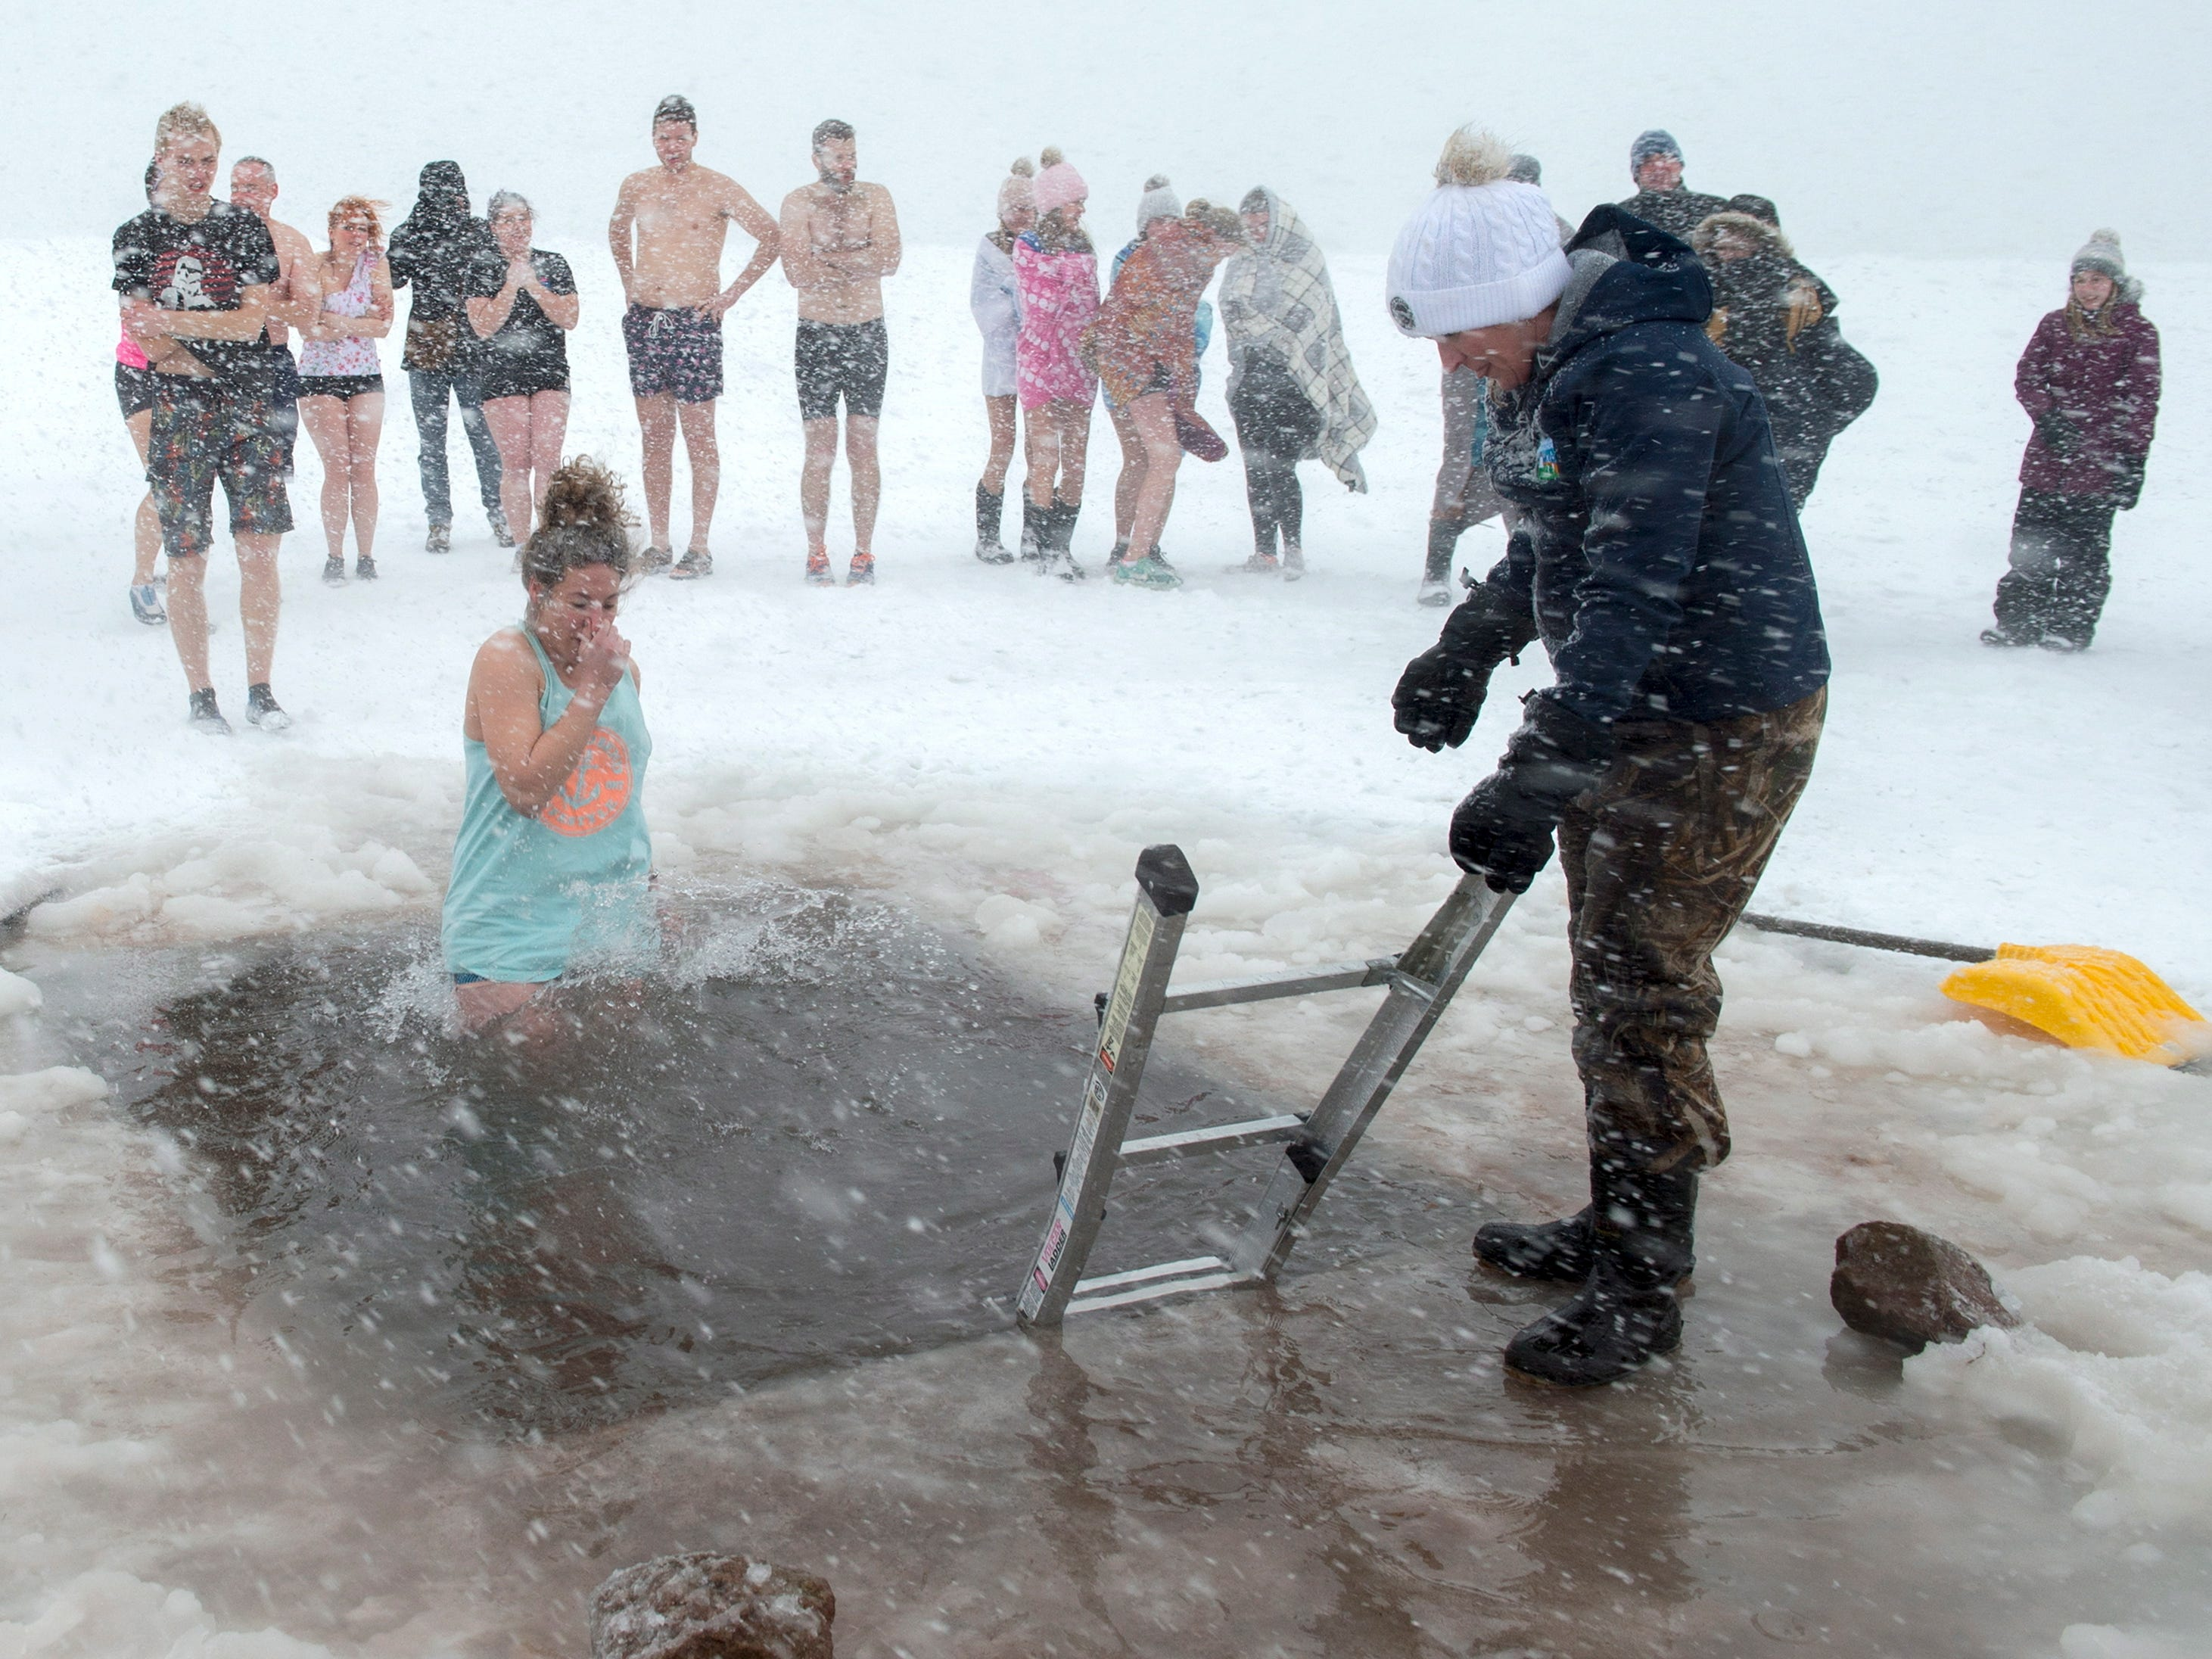 Swimmers brave stormy conditions as they participate in the annual New Year's Polar Bear Club dip in Charlottetown harbor on Prince Edward Island, Canada.